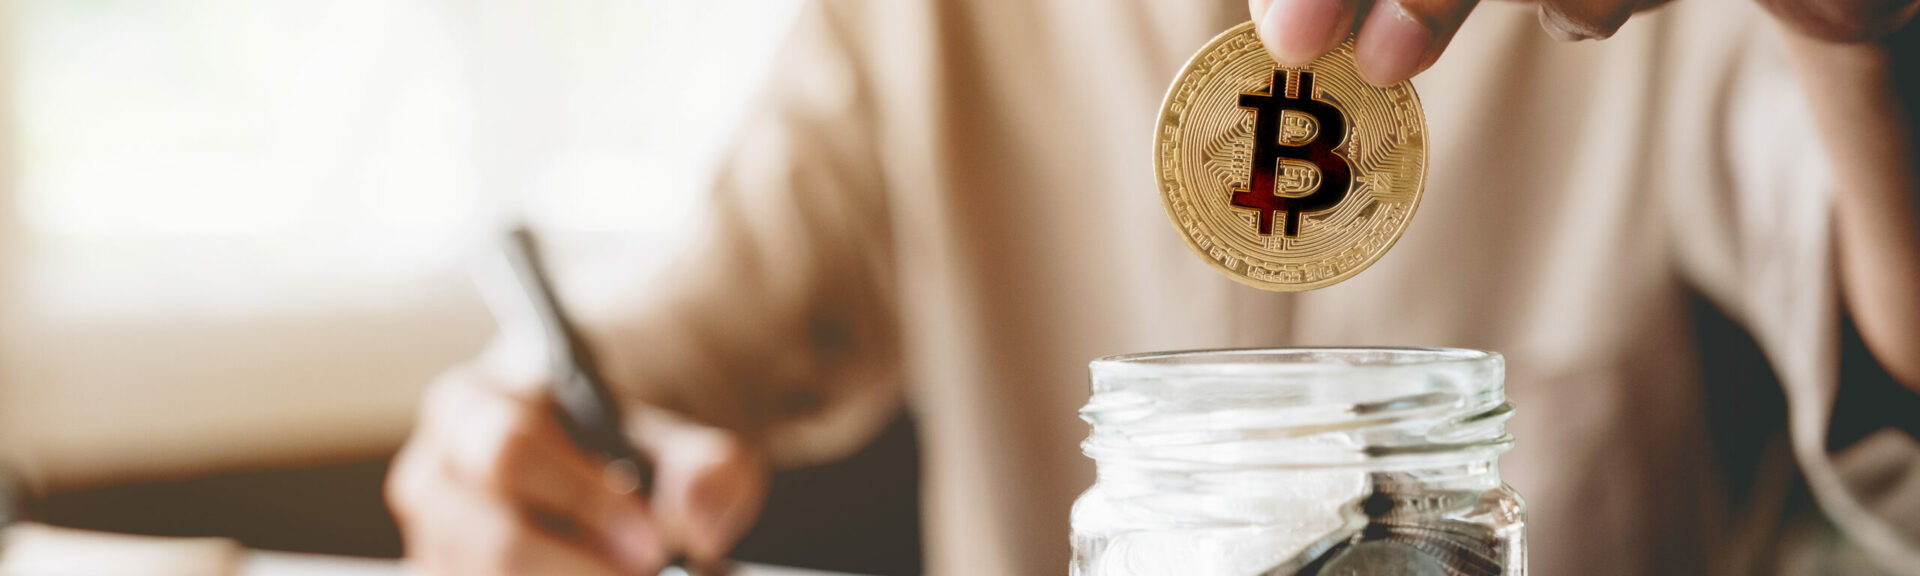 A person sitting at her desk and holding a bitcoin